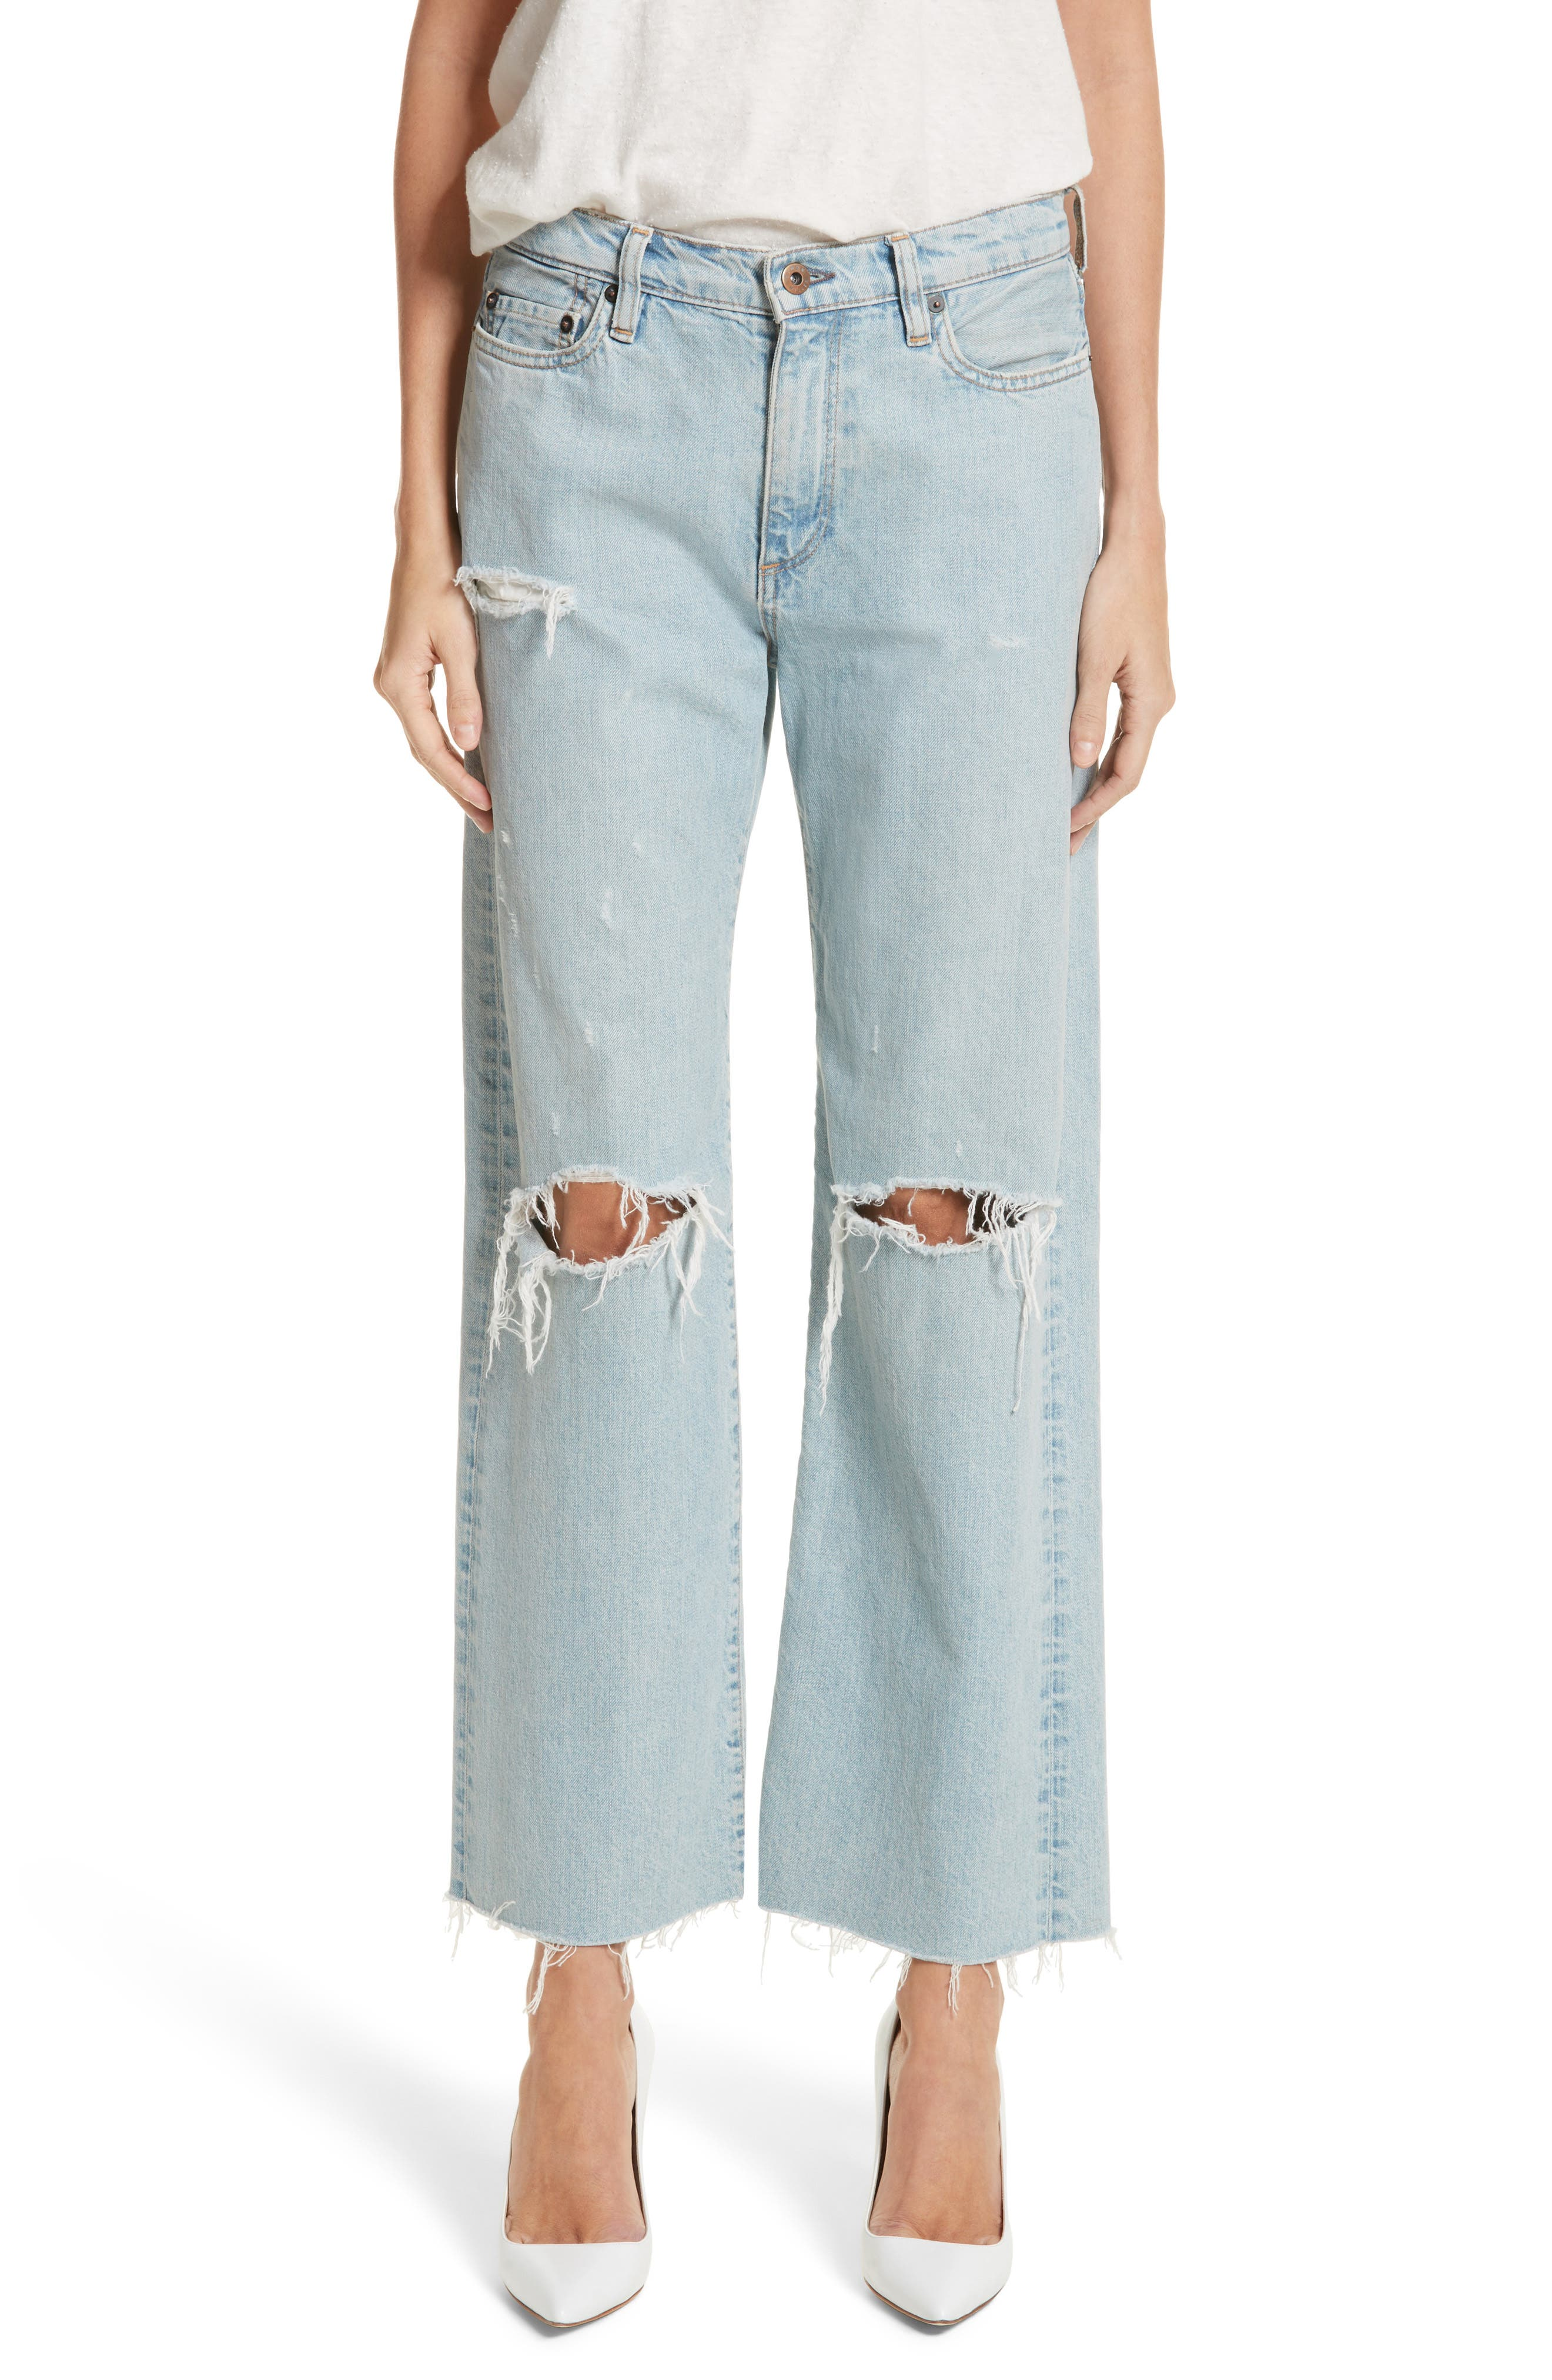 Tibbee Ripped Jeans,                             Main thumbnail 1, color,                             400